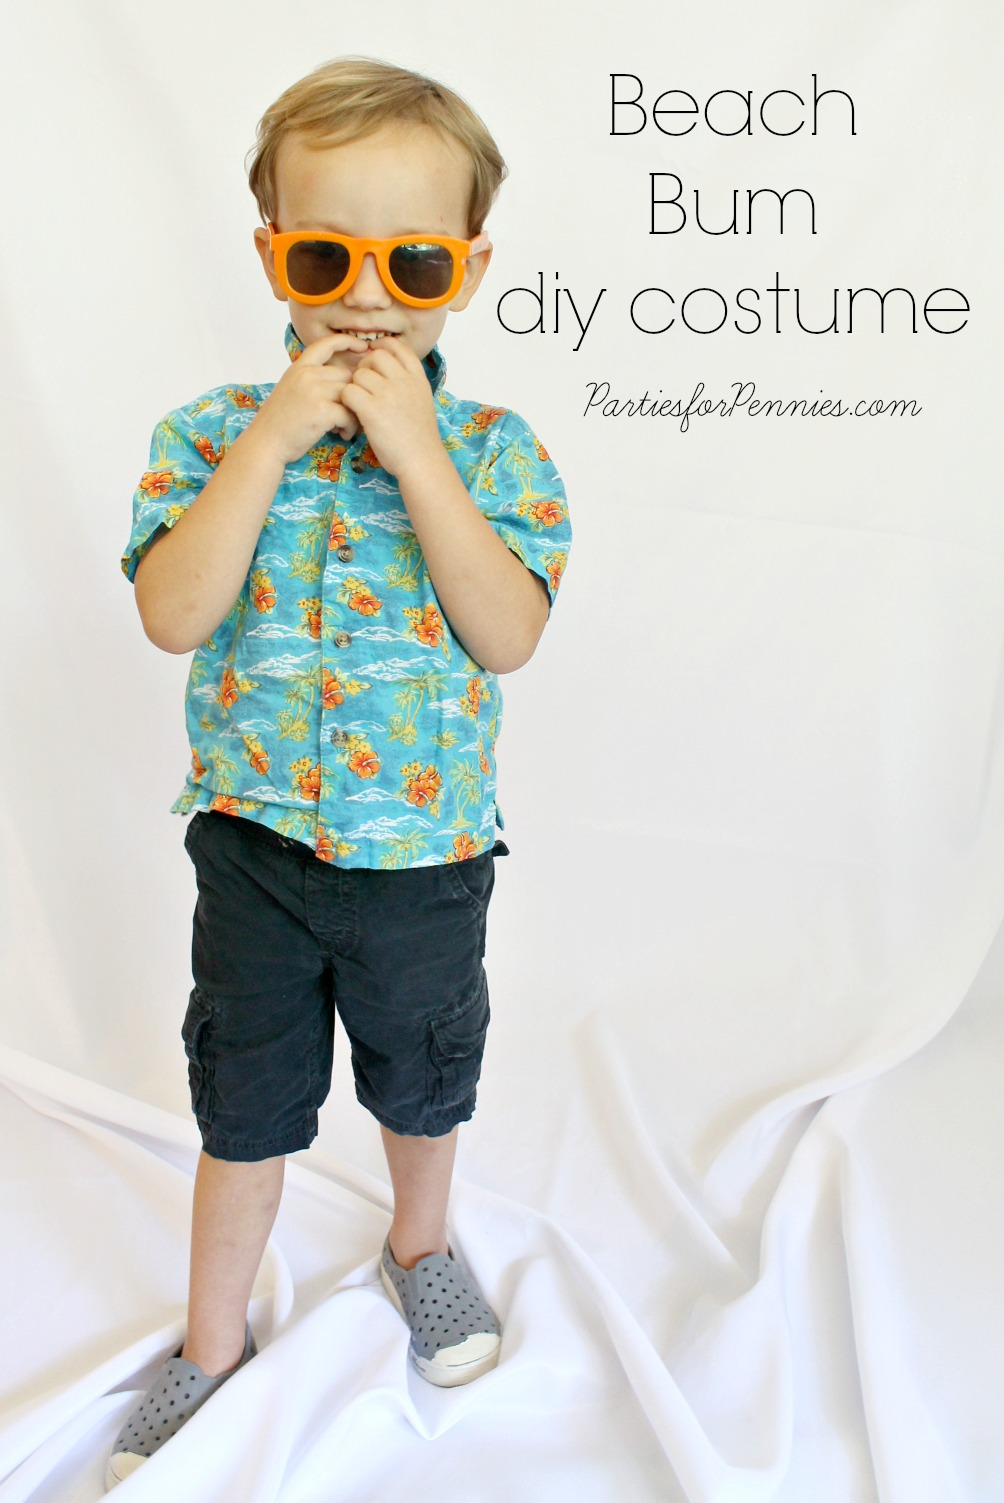 DIY Costume - Beach Bum by PartiesforPennies.com